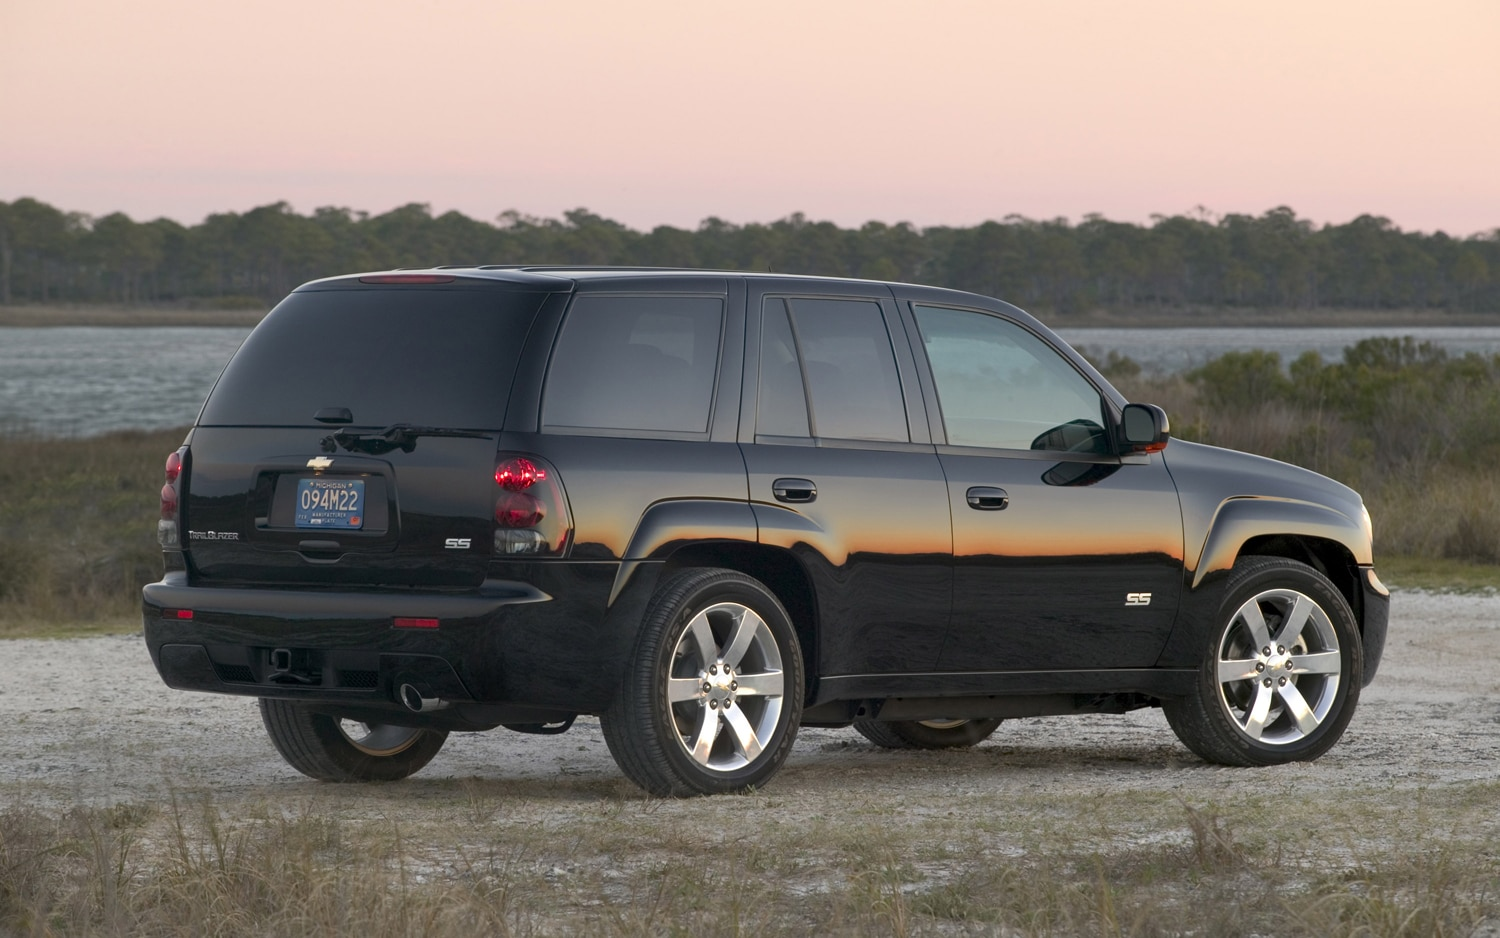 2006 Chevrolet Trailblazer SS Rear View1